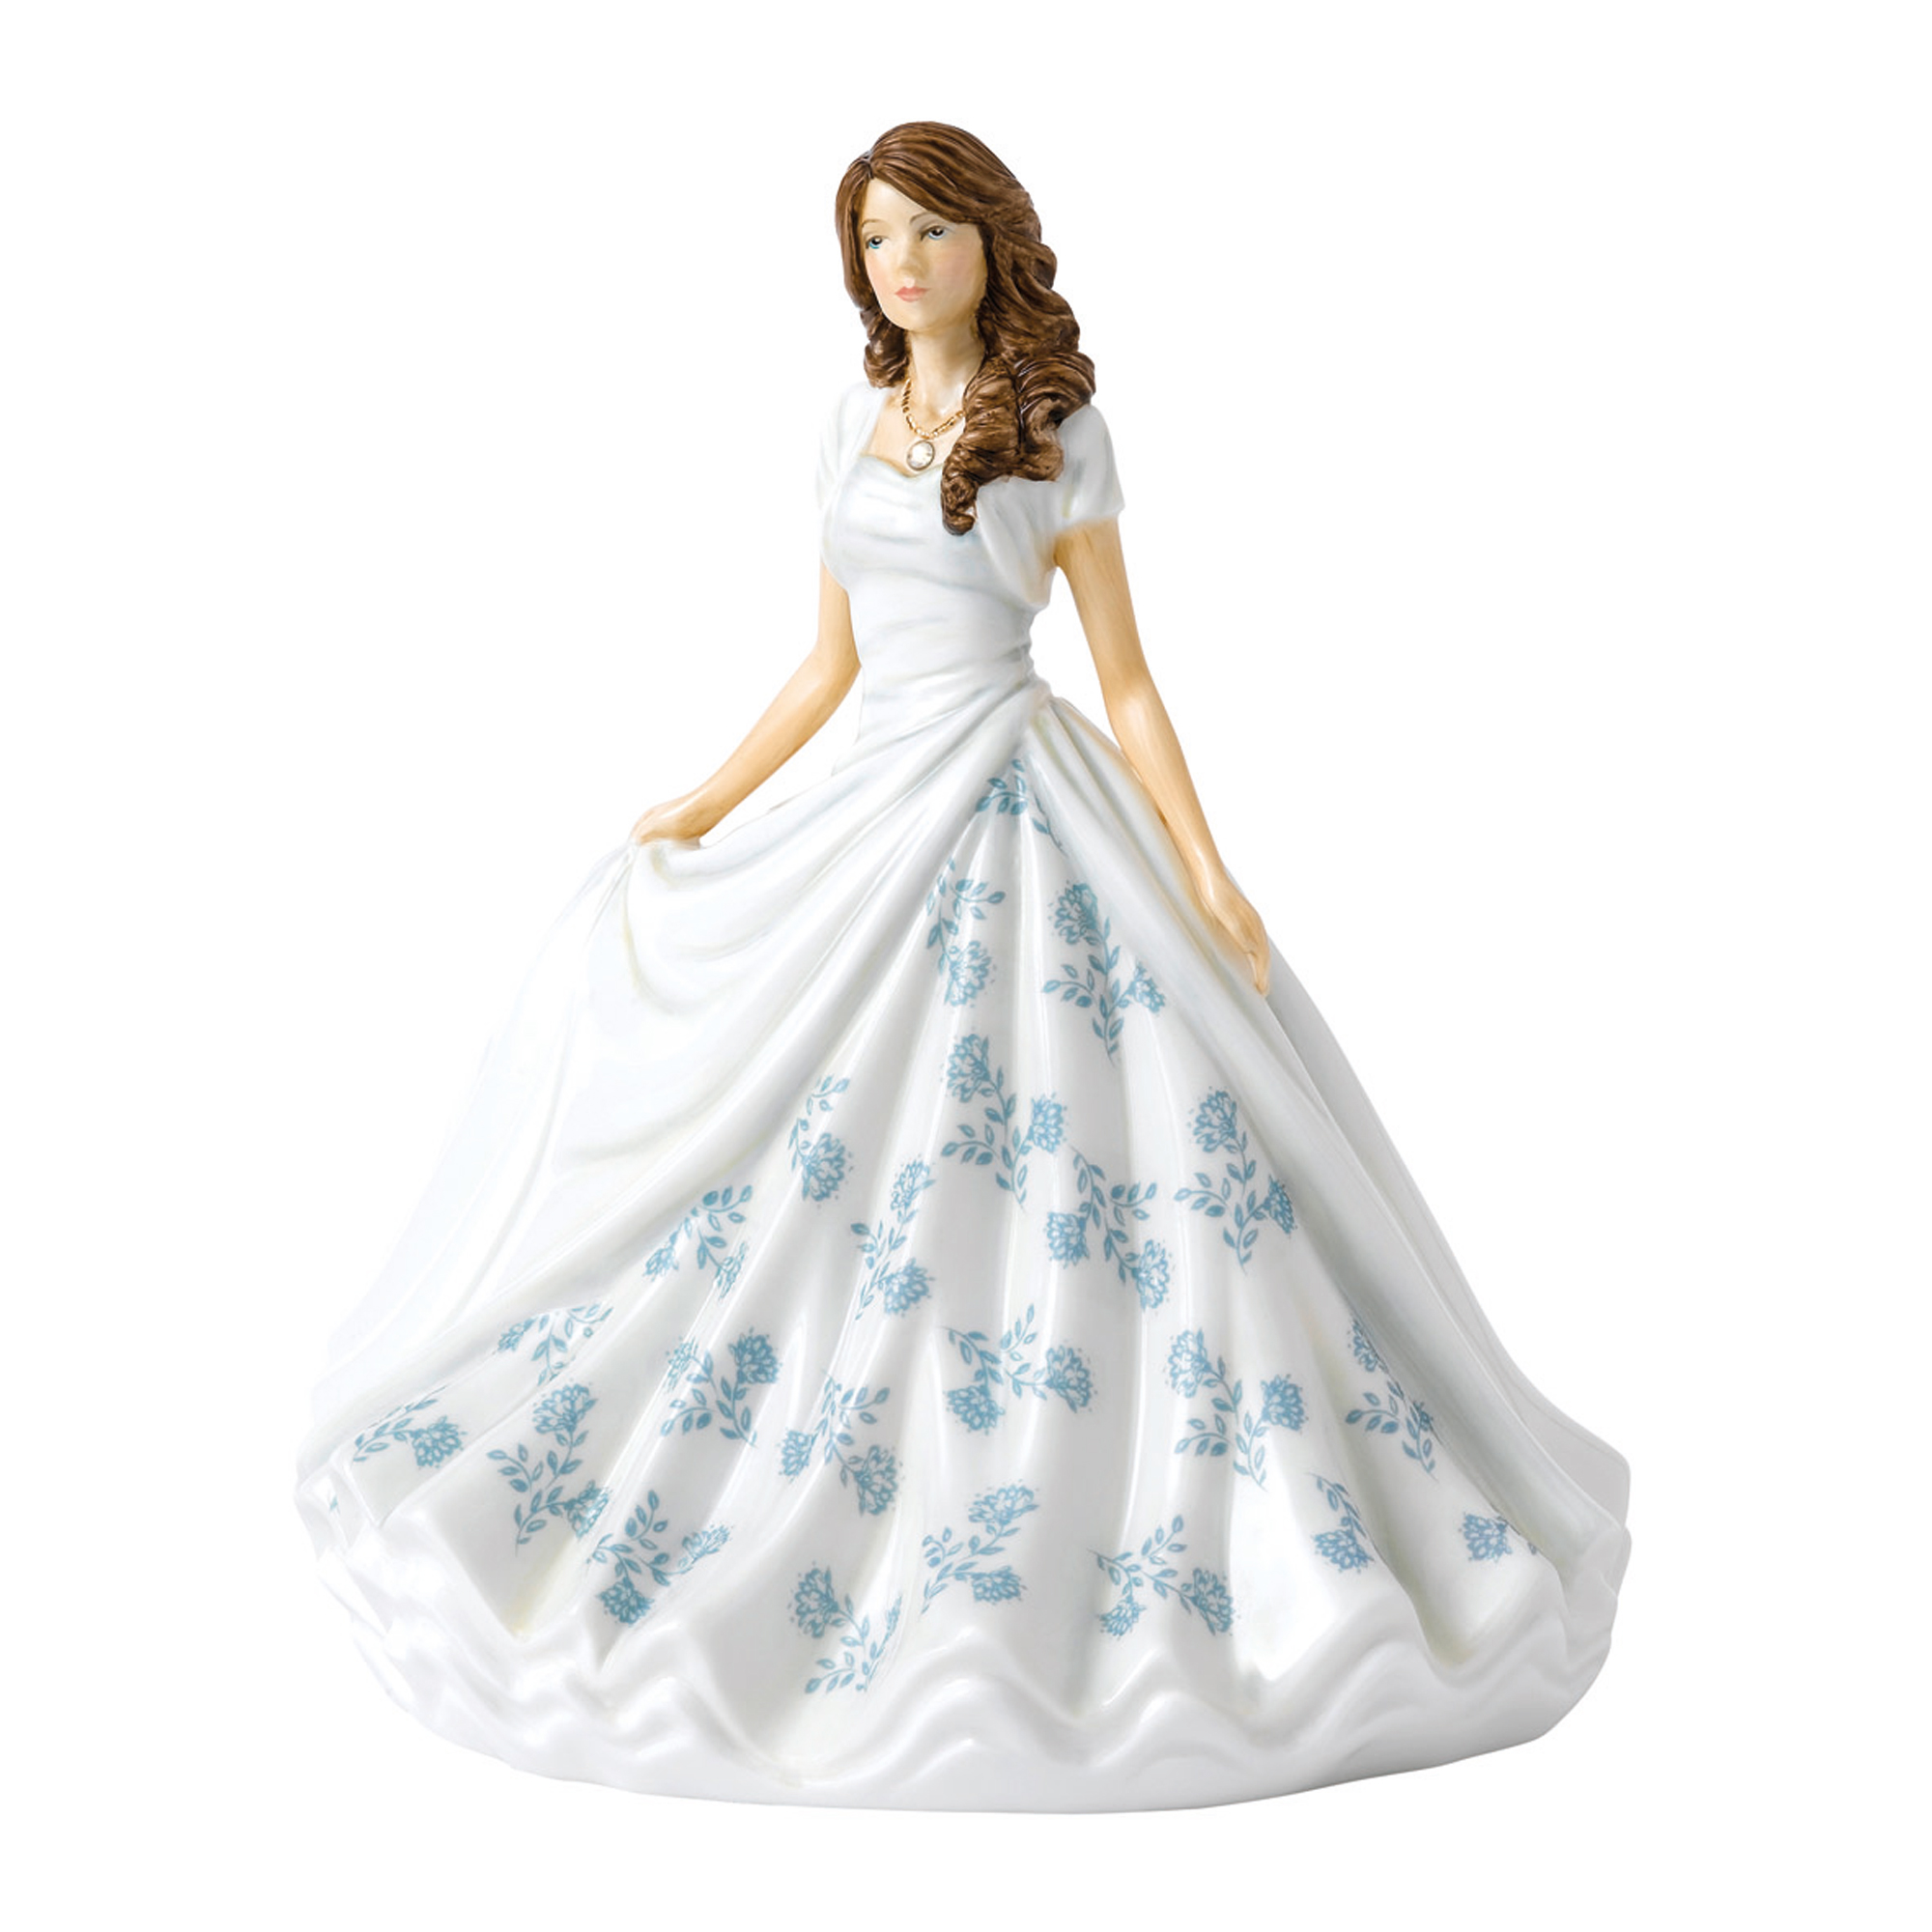 June (Pearl) HN5902 Royal Doulton Figurine